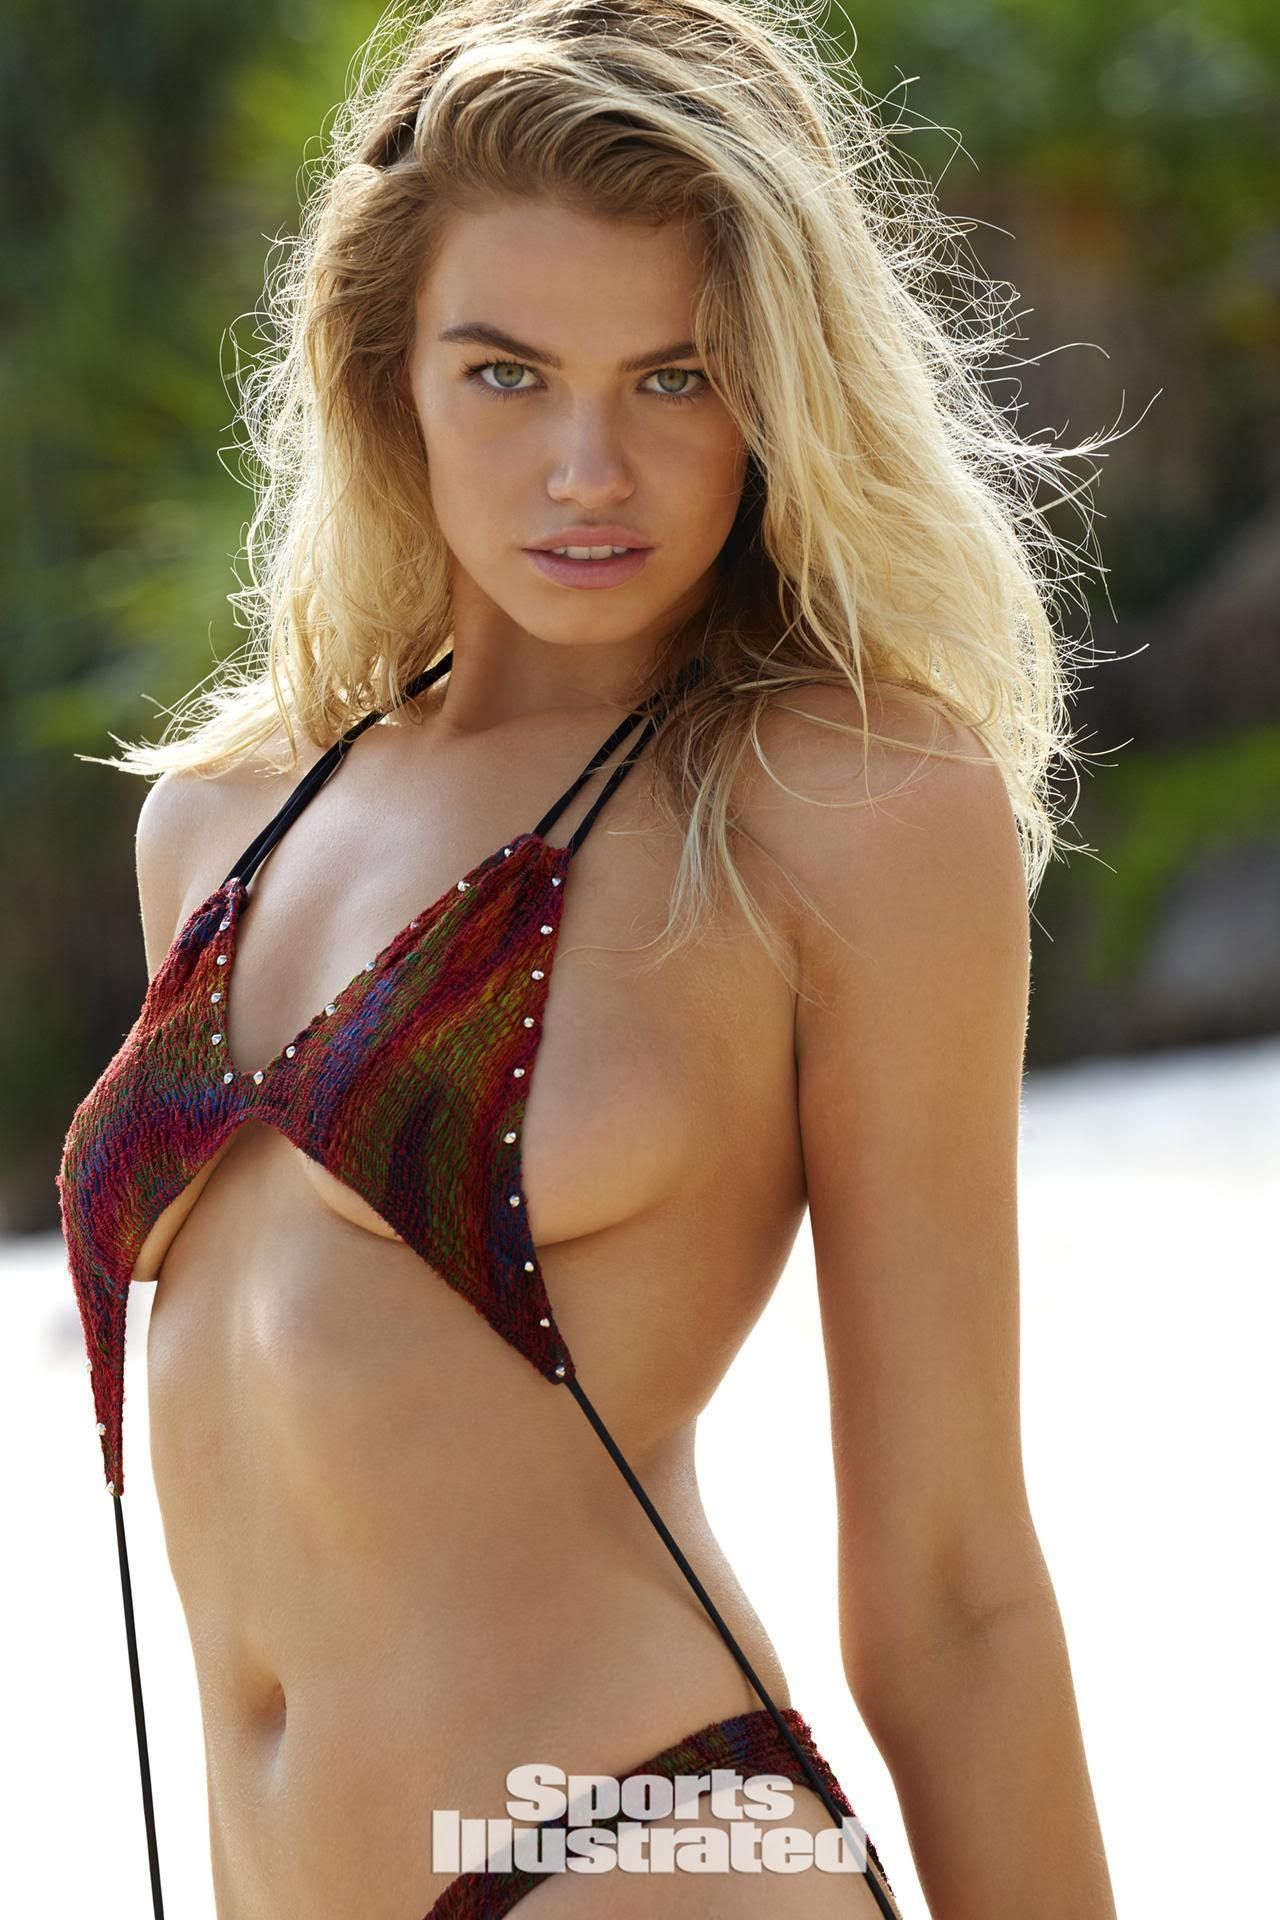 TheFappening Hailey Clauson nudes (18 foto and video), Pussy, Is a cute, Boobs, panties 2006